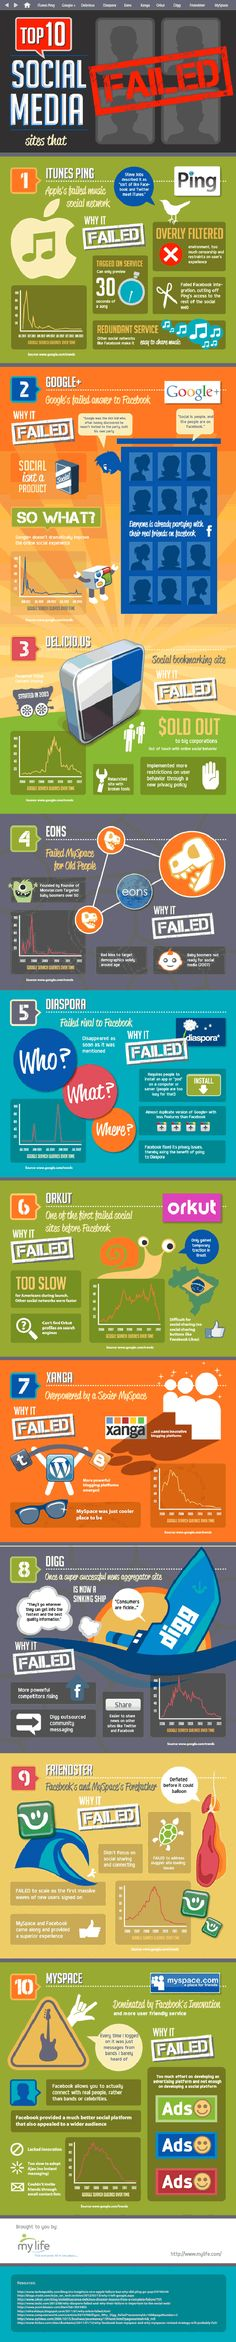 Top 10 Failed #SocialMedia Sites & What We Can Learn